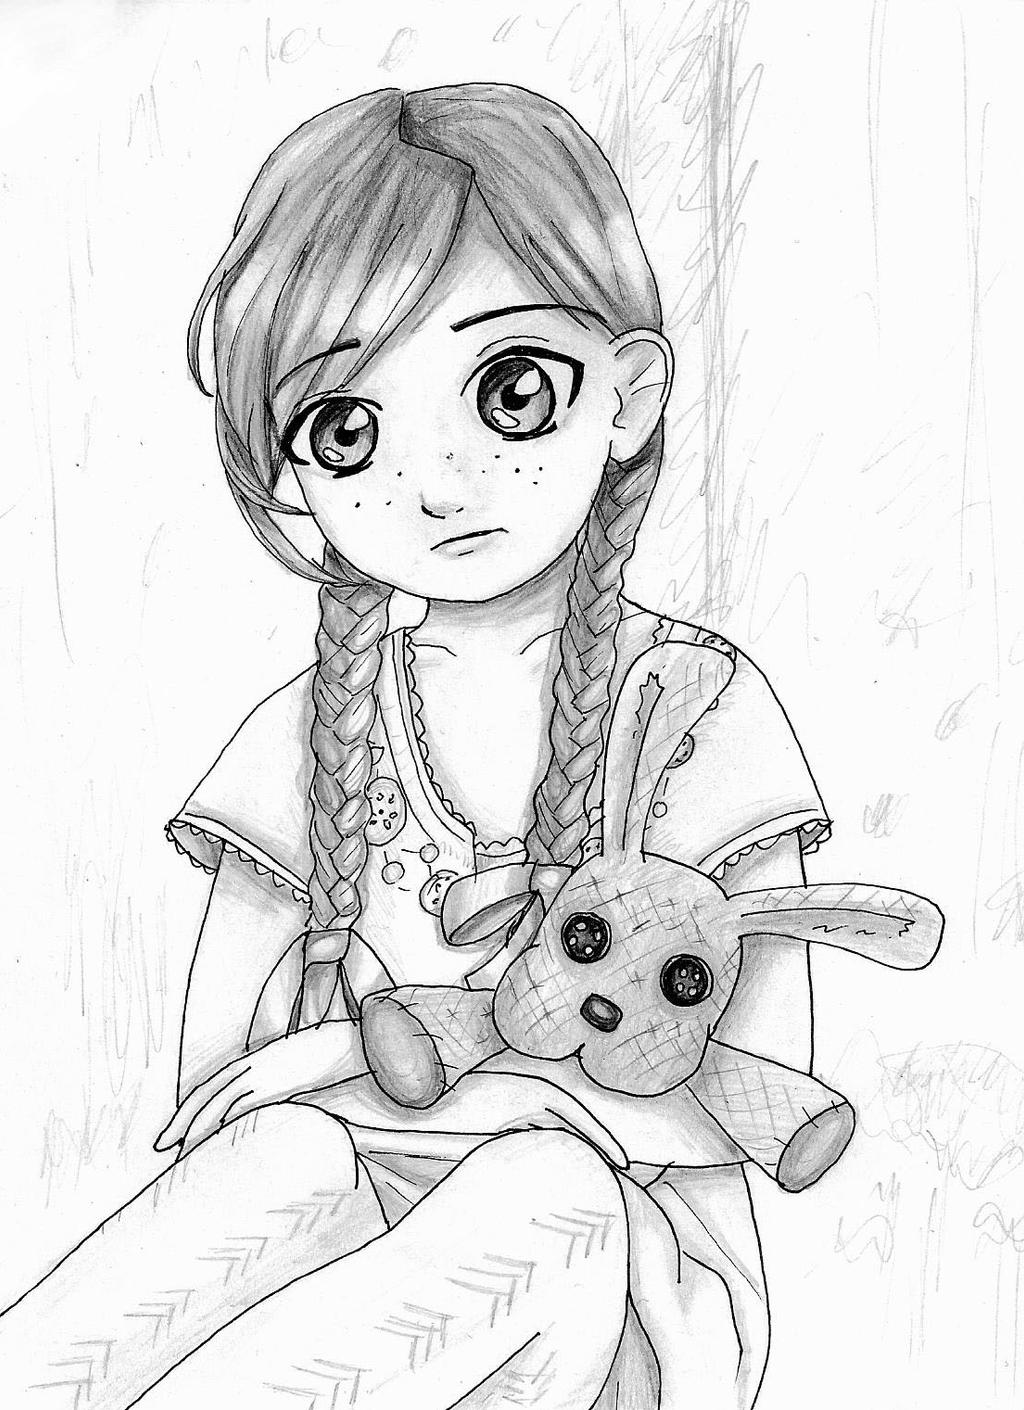 Sketch Of A Girl Sitting Alone   Www.imgkid.com - The Image Kid Has It!